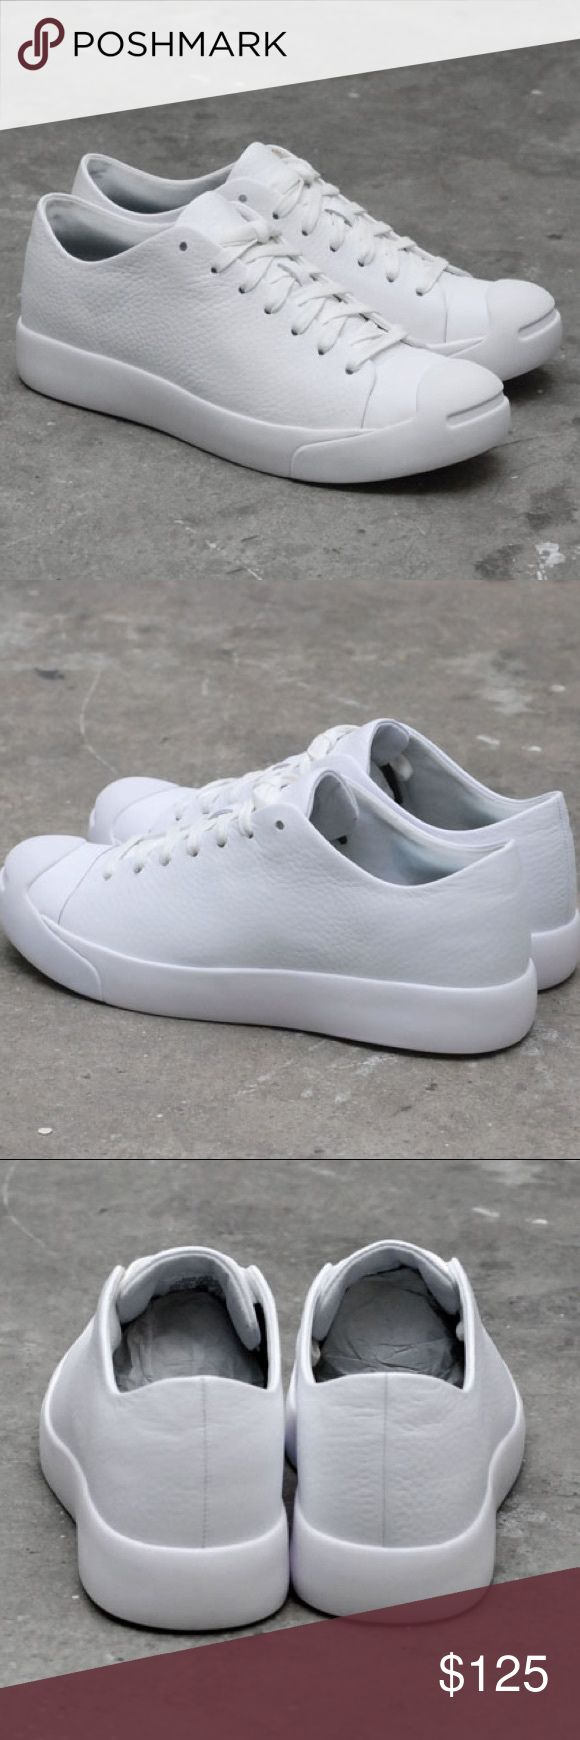 Converse x HTM Jack Purcell Modern White shoes Brand new without box. Converse Shoes Sneakers